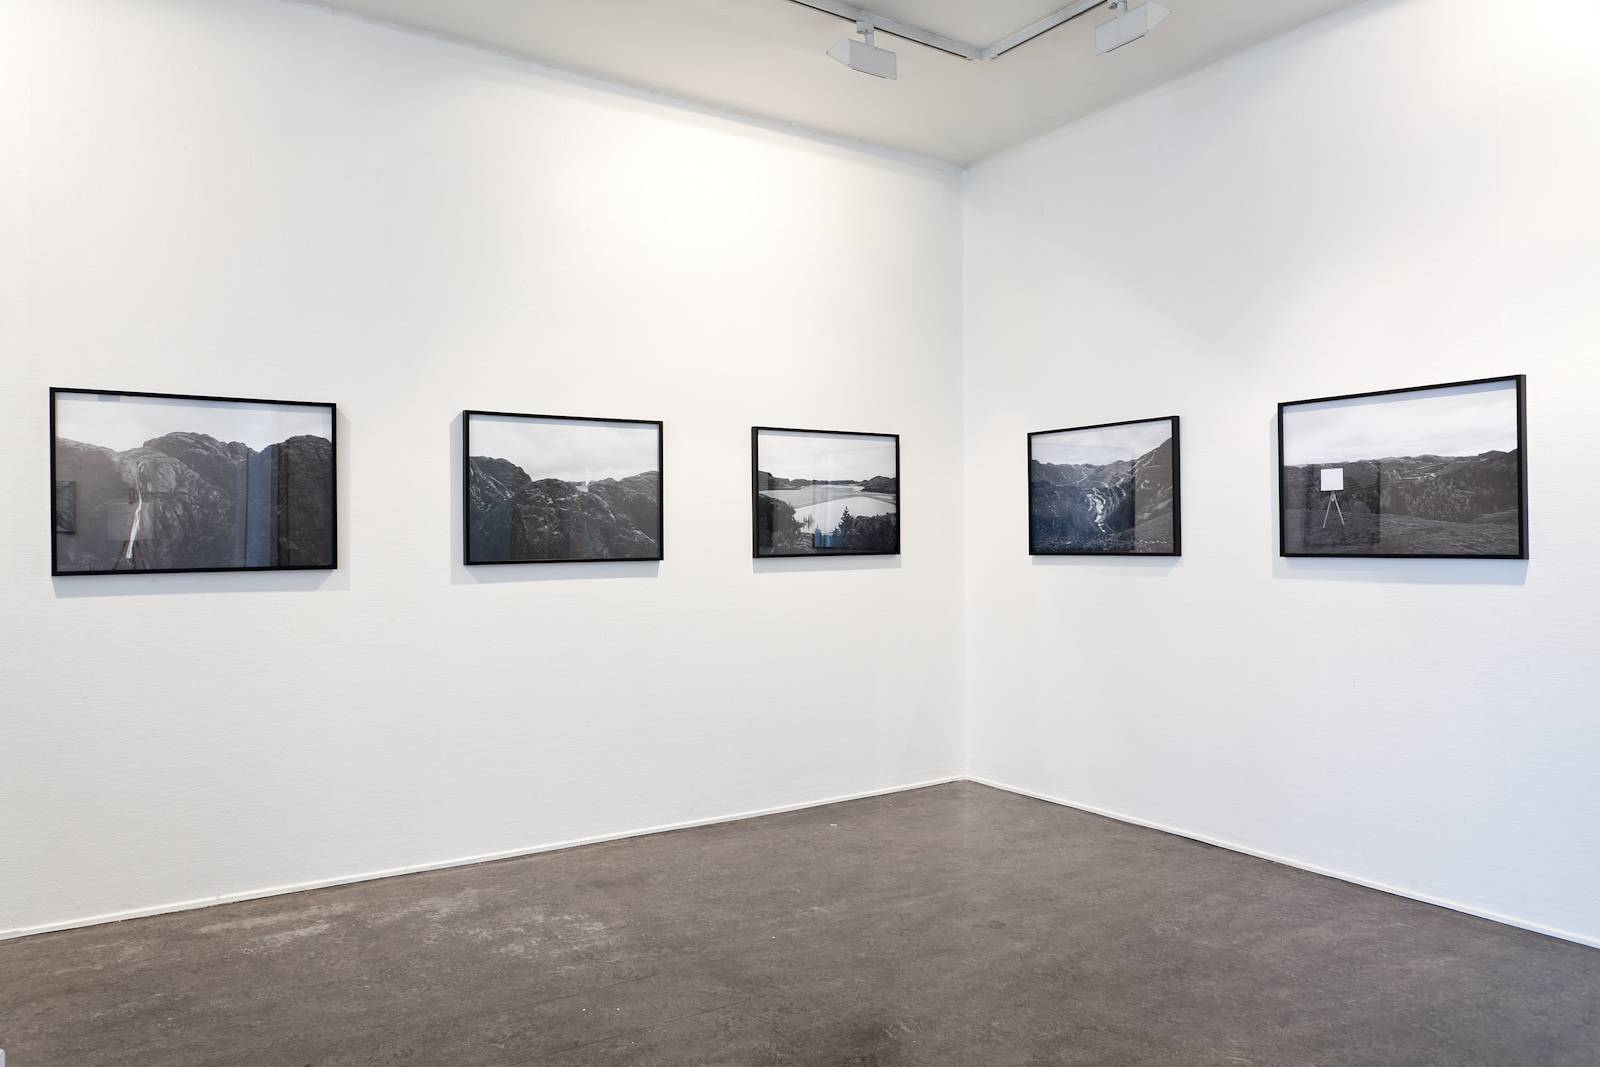 The Whitest White, 2012, C-print, 50 x 70 cm (each). Installation view Marte Johnslien, The Whitest White, Kunstnerforbundet, Oslo, 2012